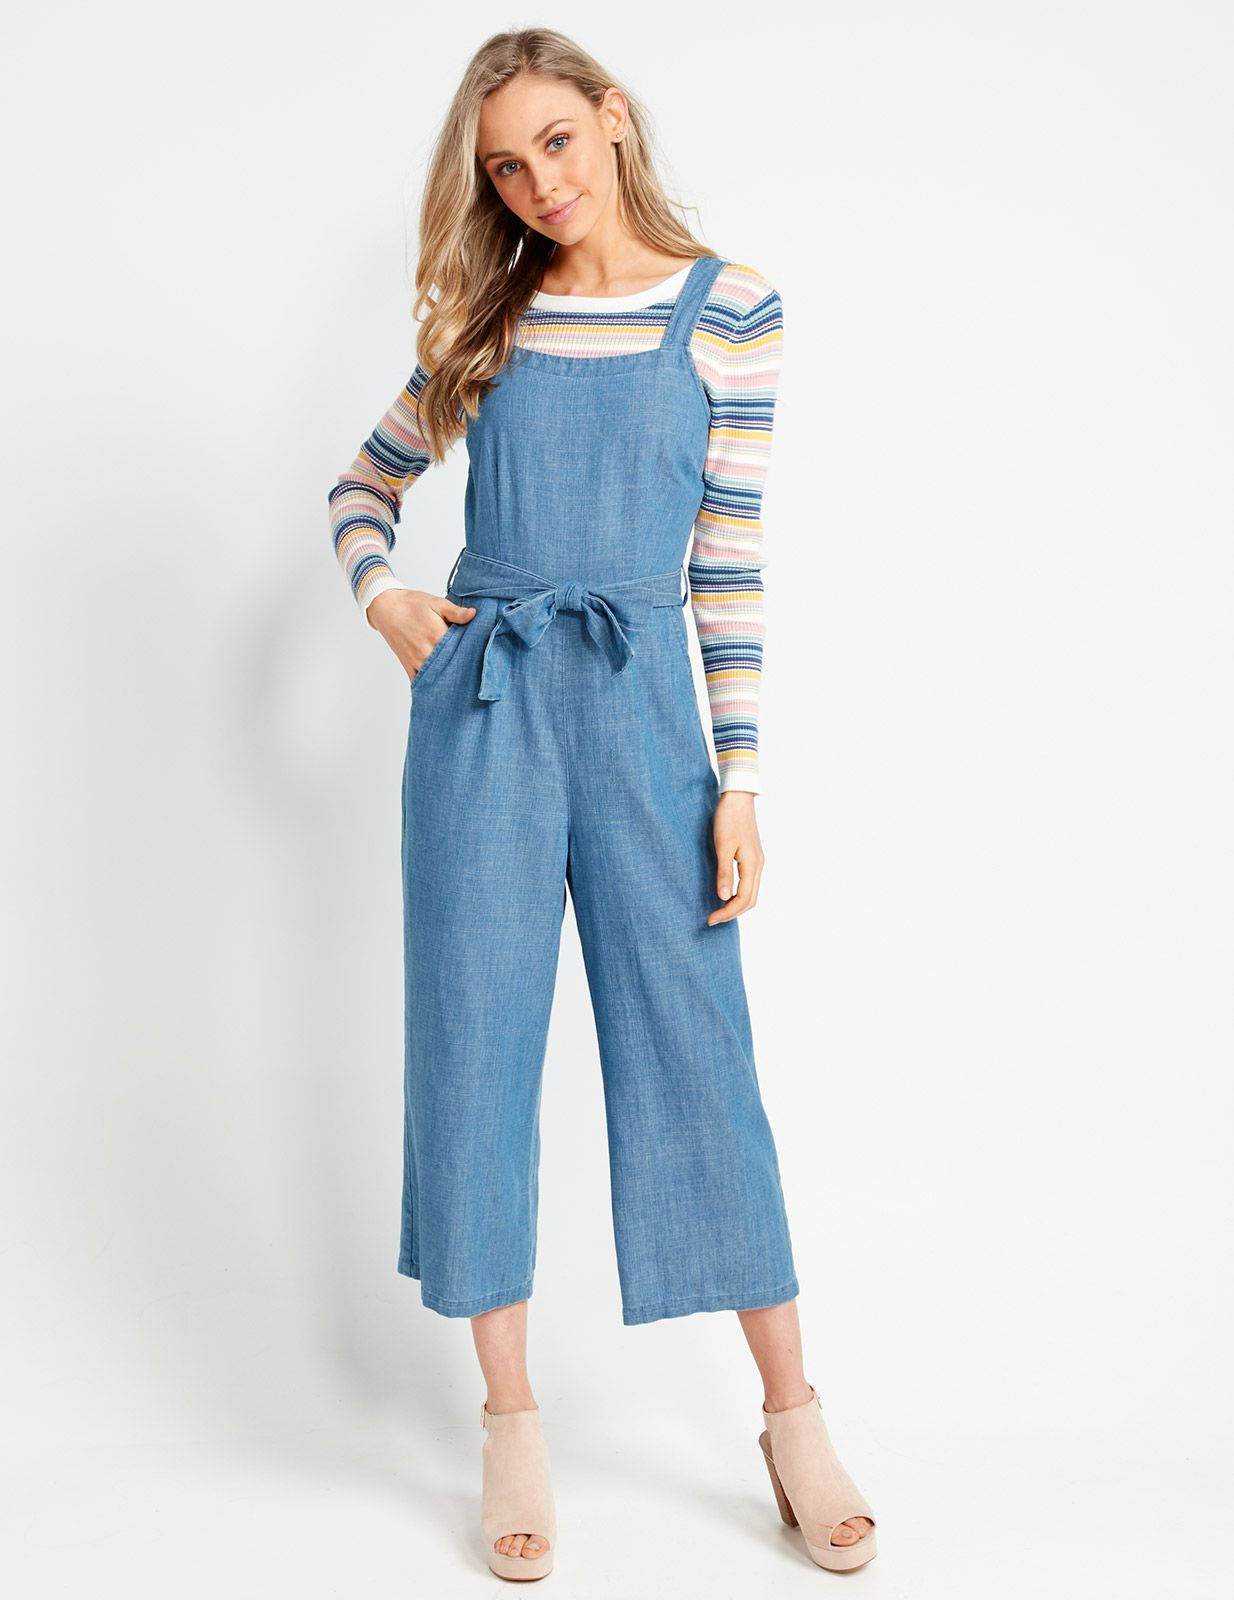 8d3e9069df9 Image for Denim Culotte Playsuit from Dotti